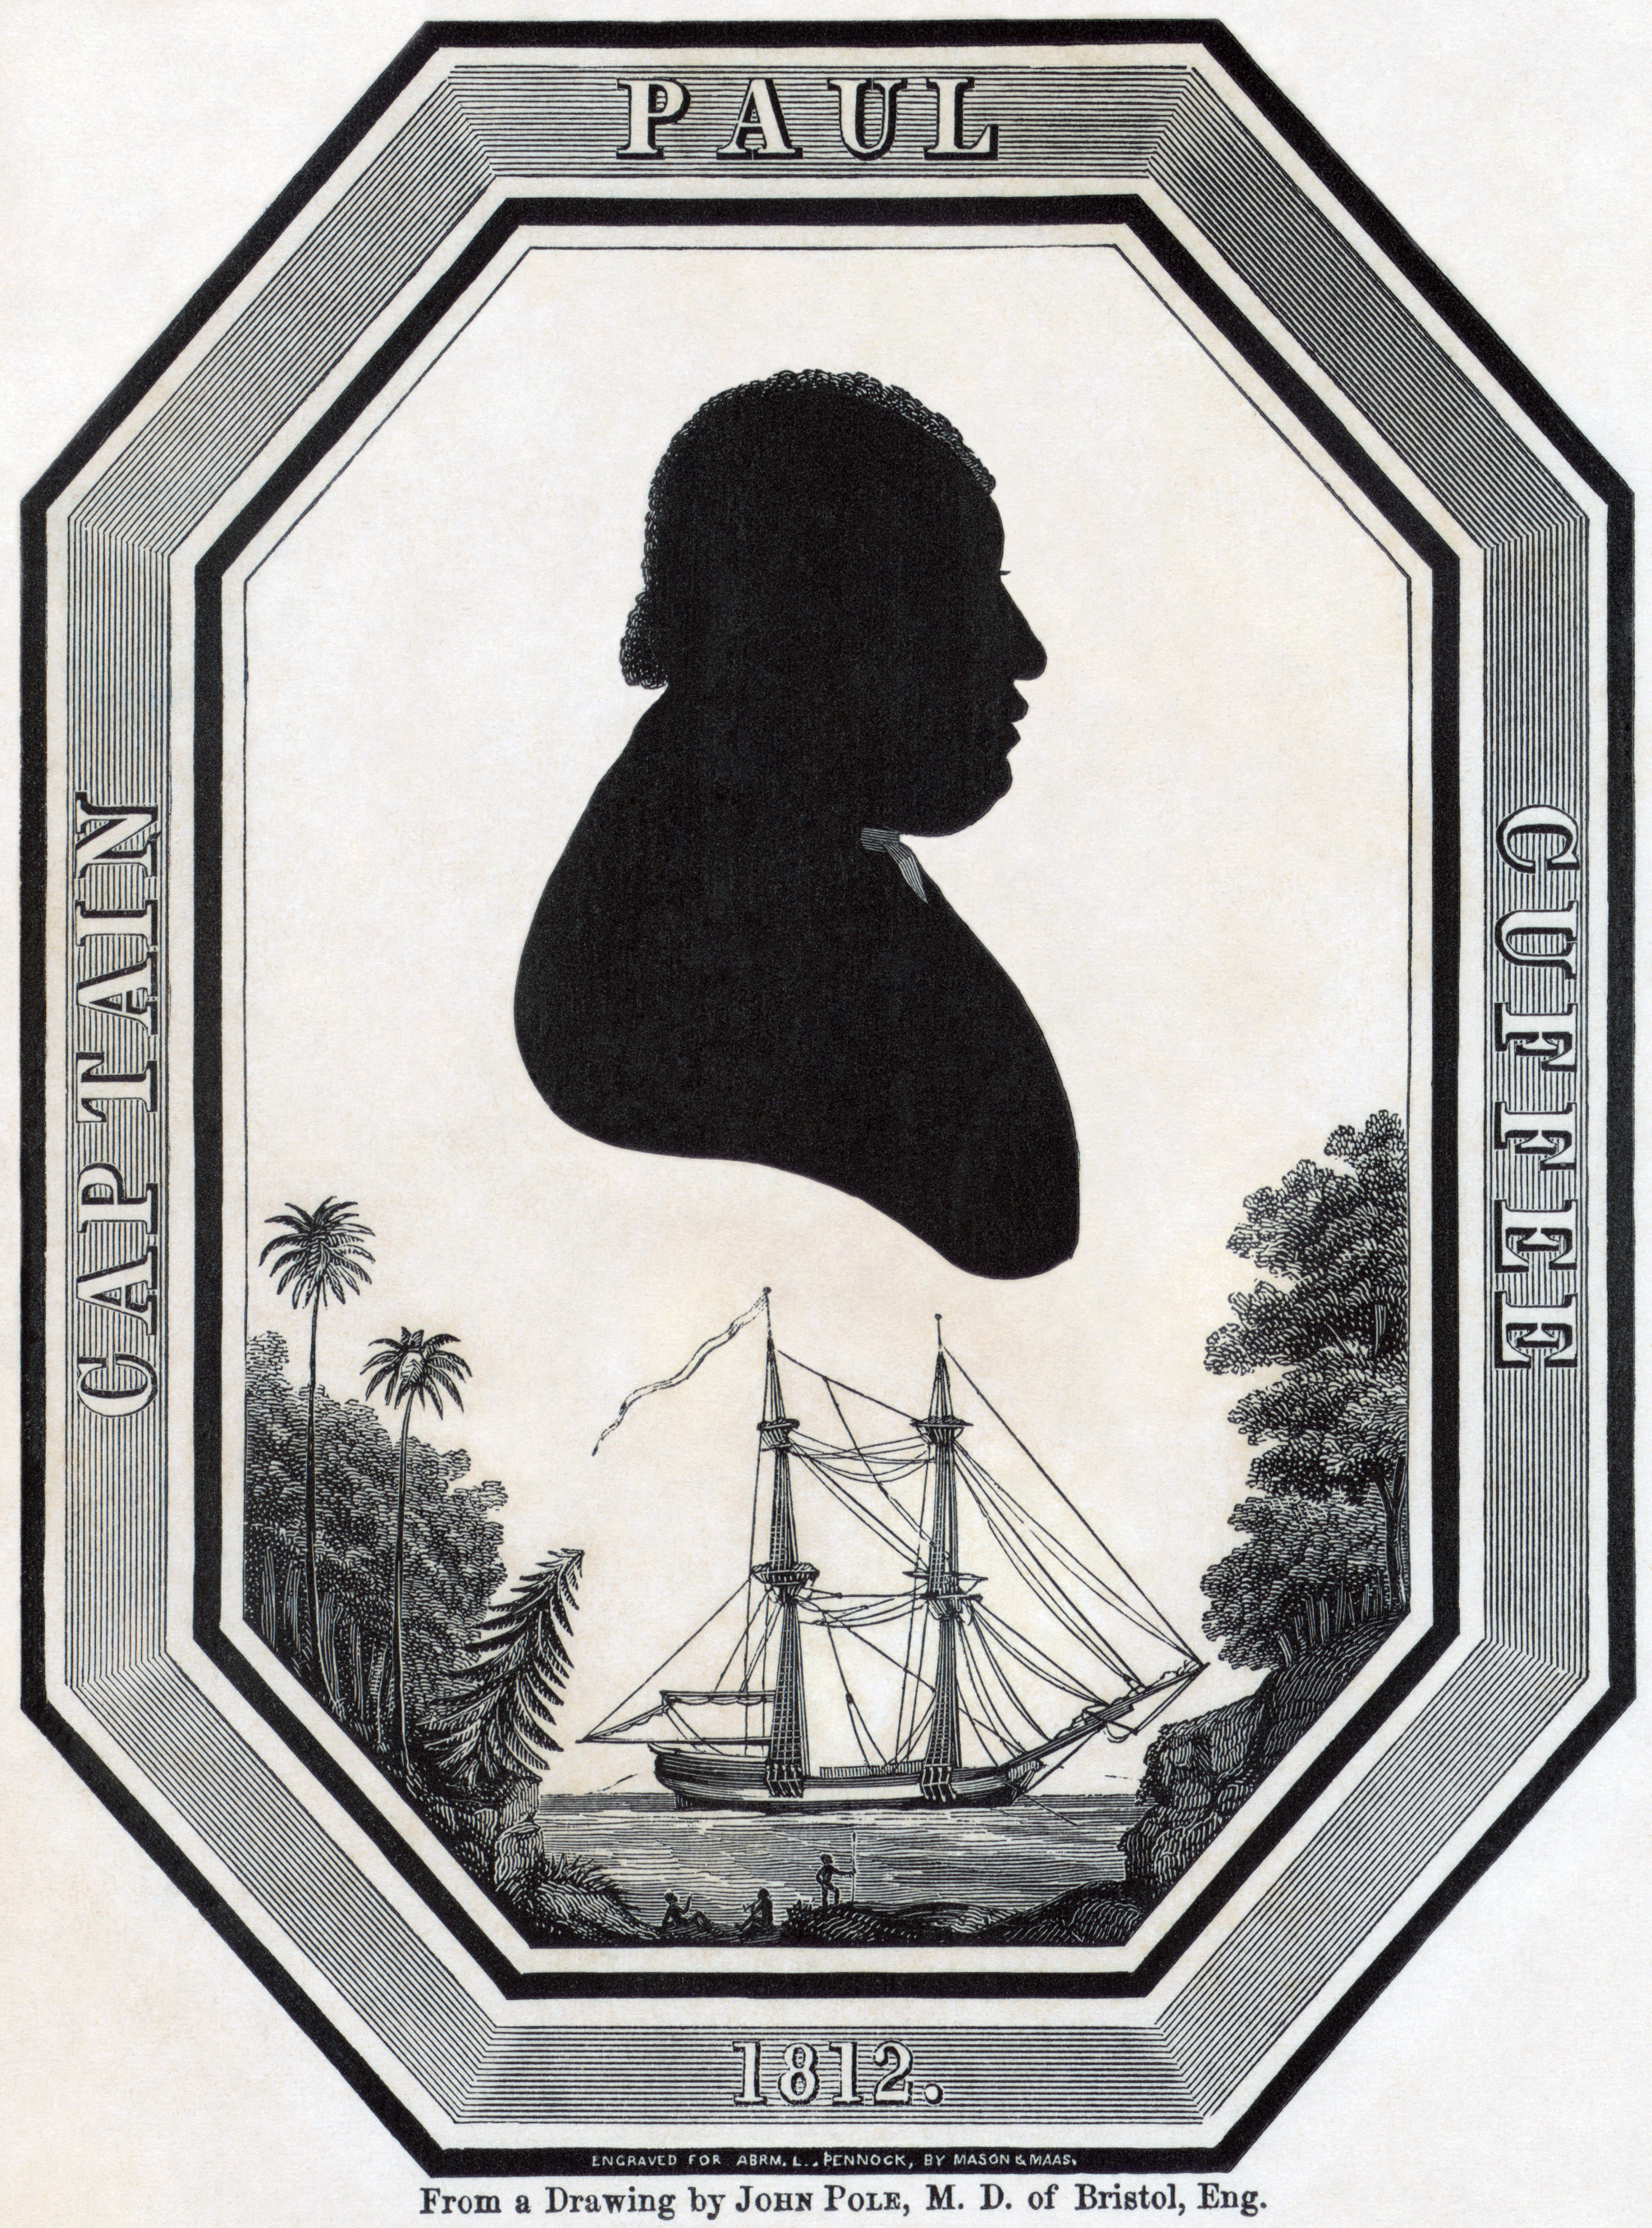 Paul Cuffee in 1812.